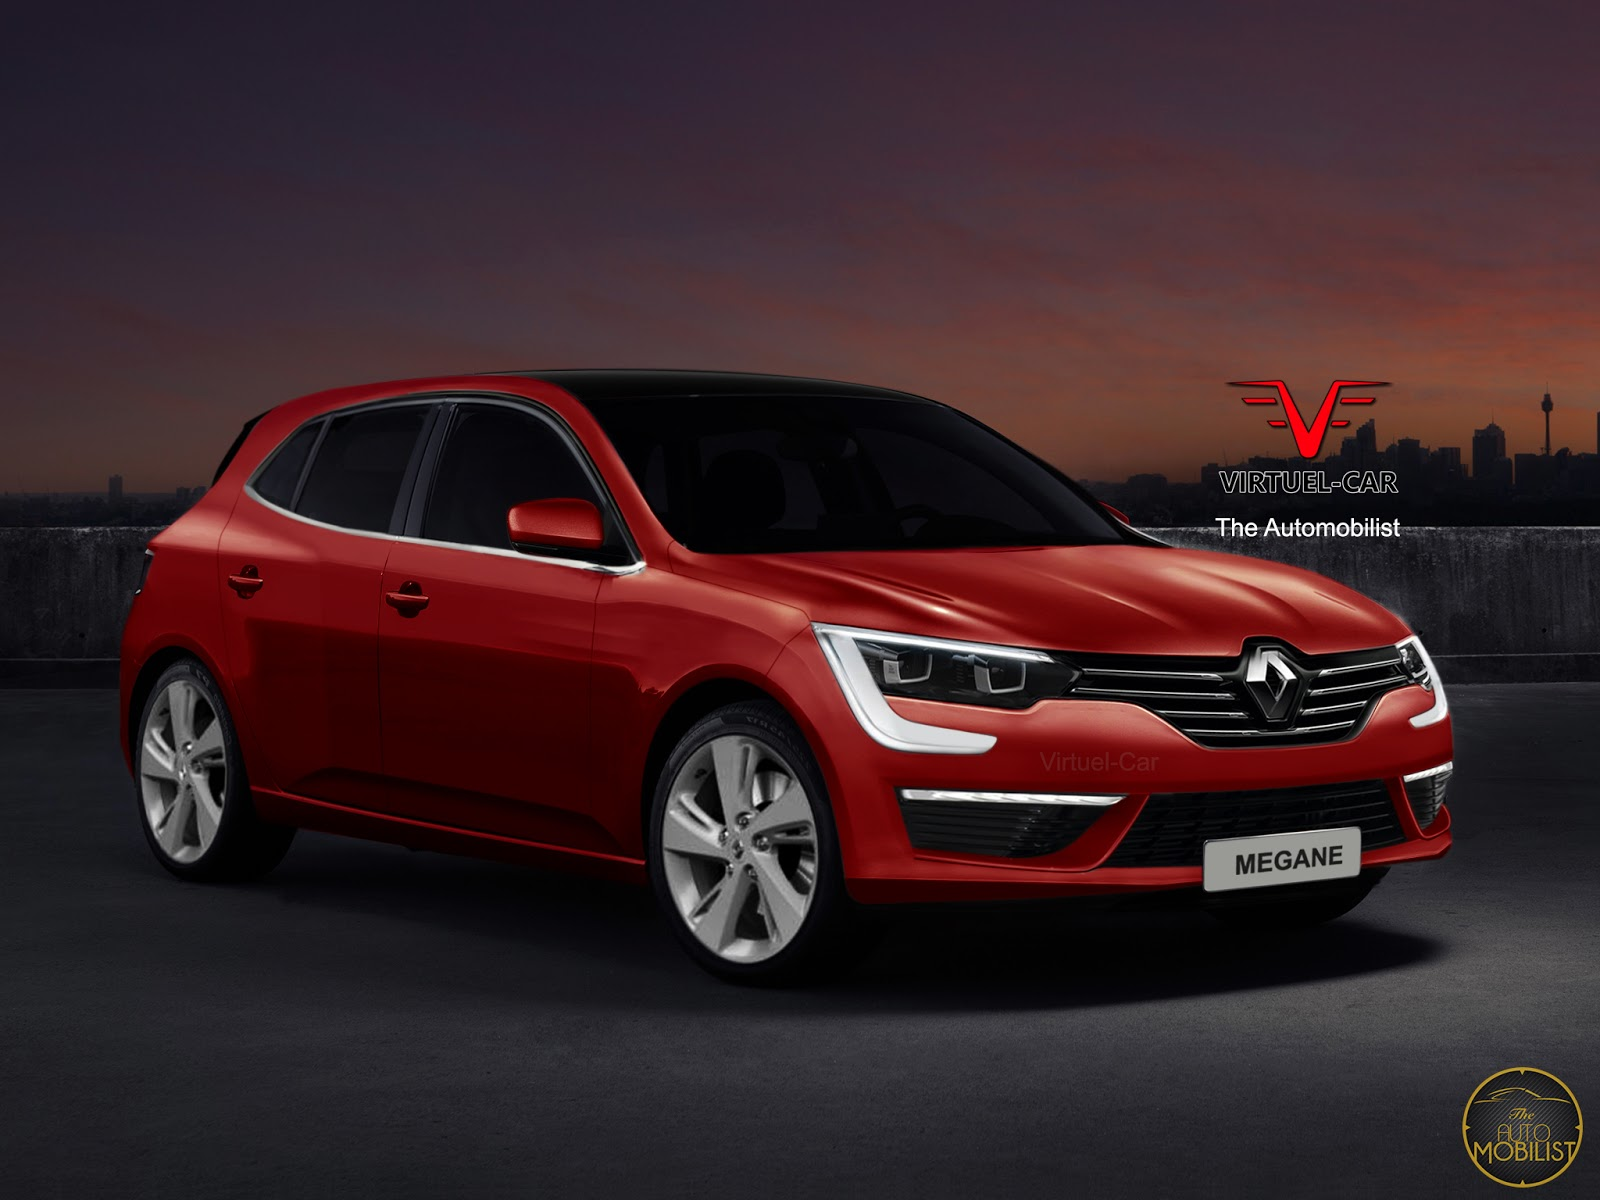 check out these renders for 2016 renault megane iv carscoops. Black Bedroom Furniture Sets. Home Design Ideas